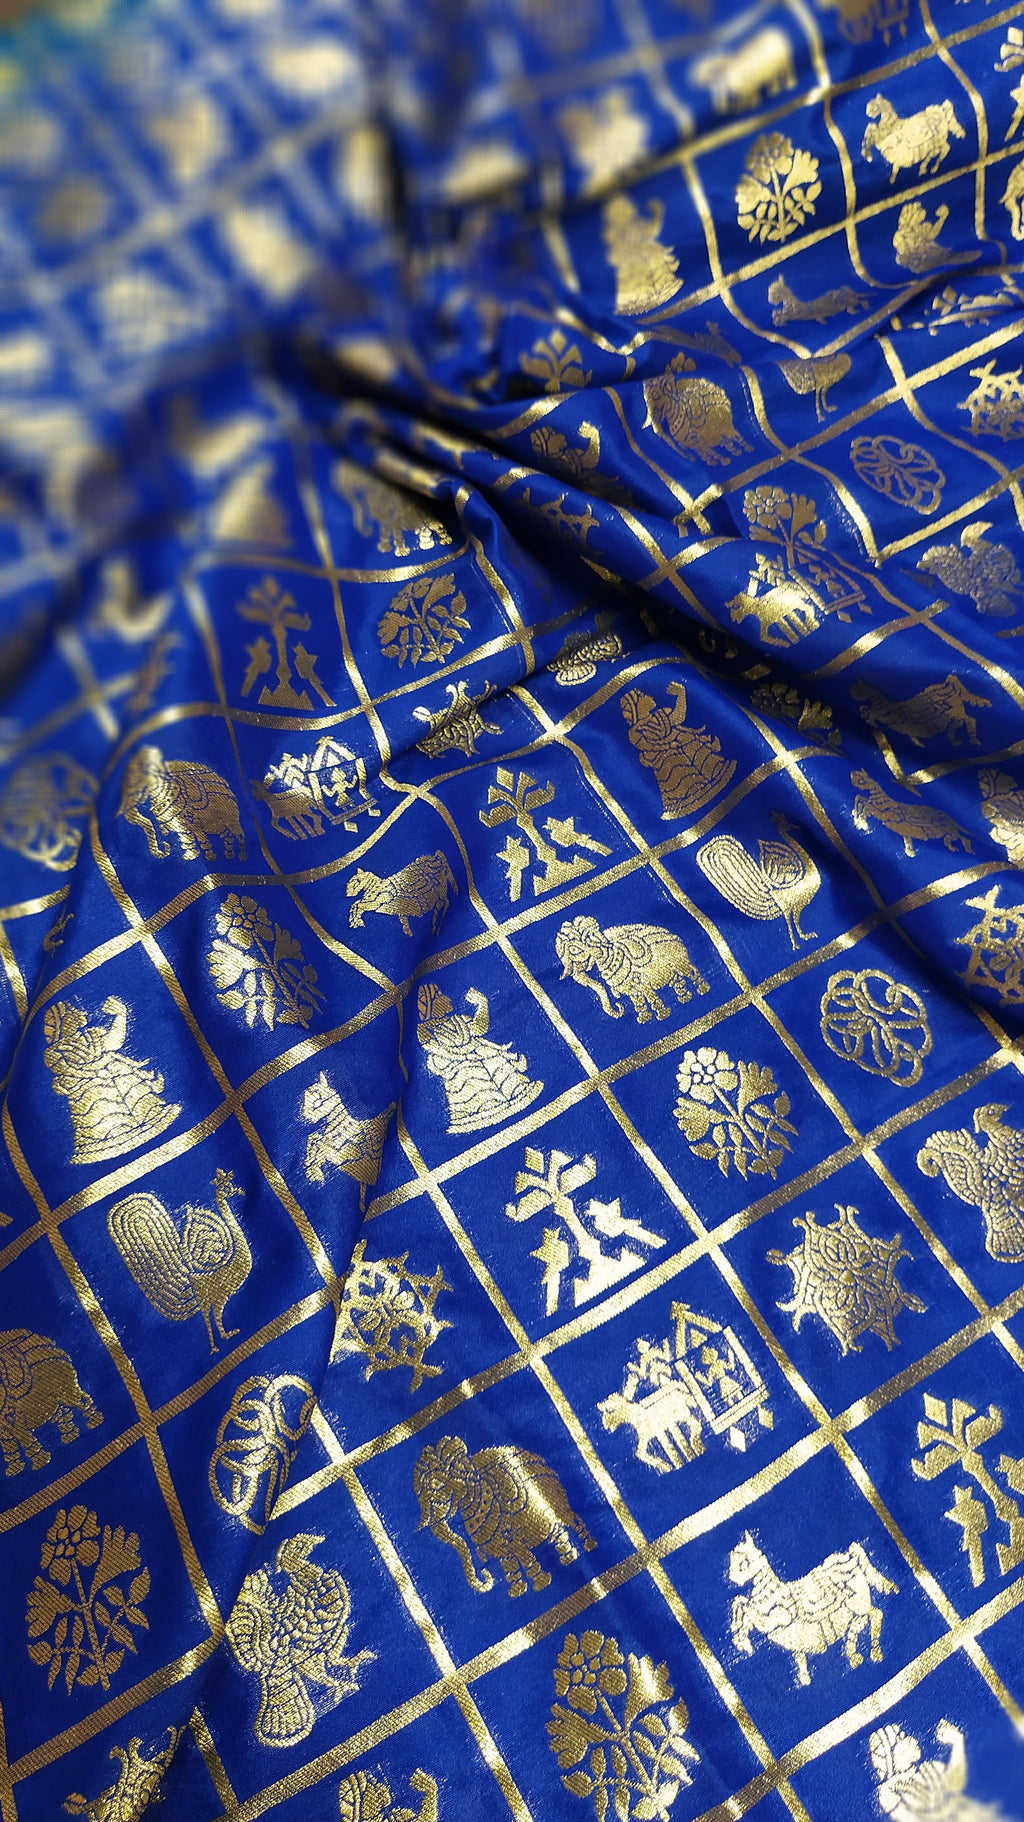 golden zari checks on royal blue blouse fabric